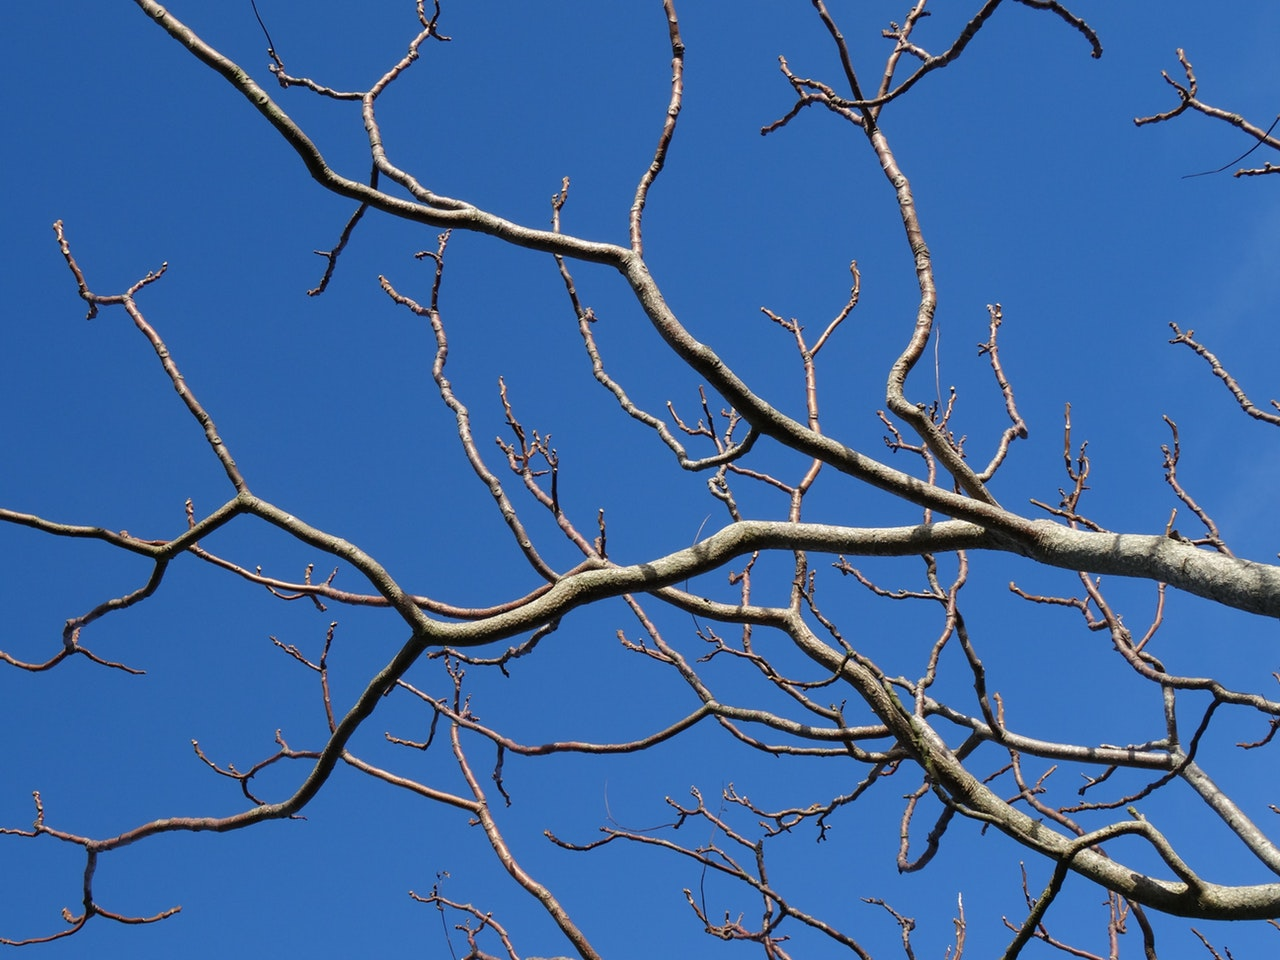 Bare tree branches against a sky-blue background